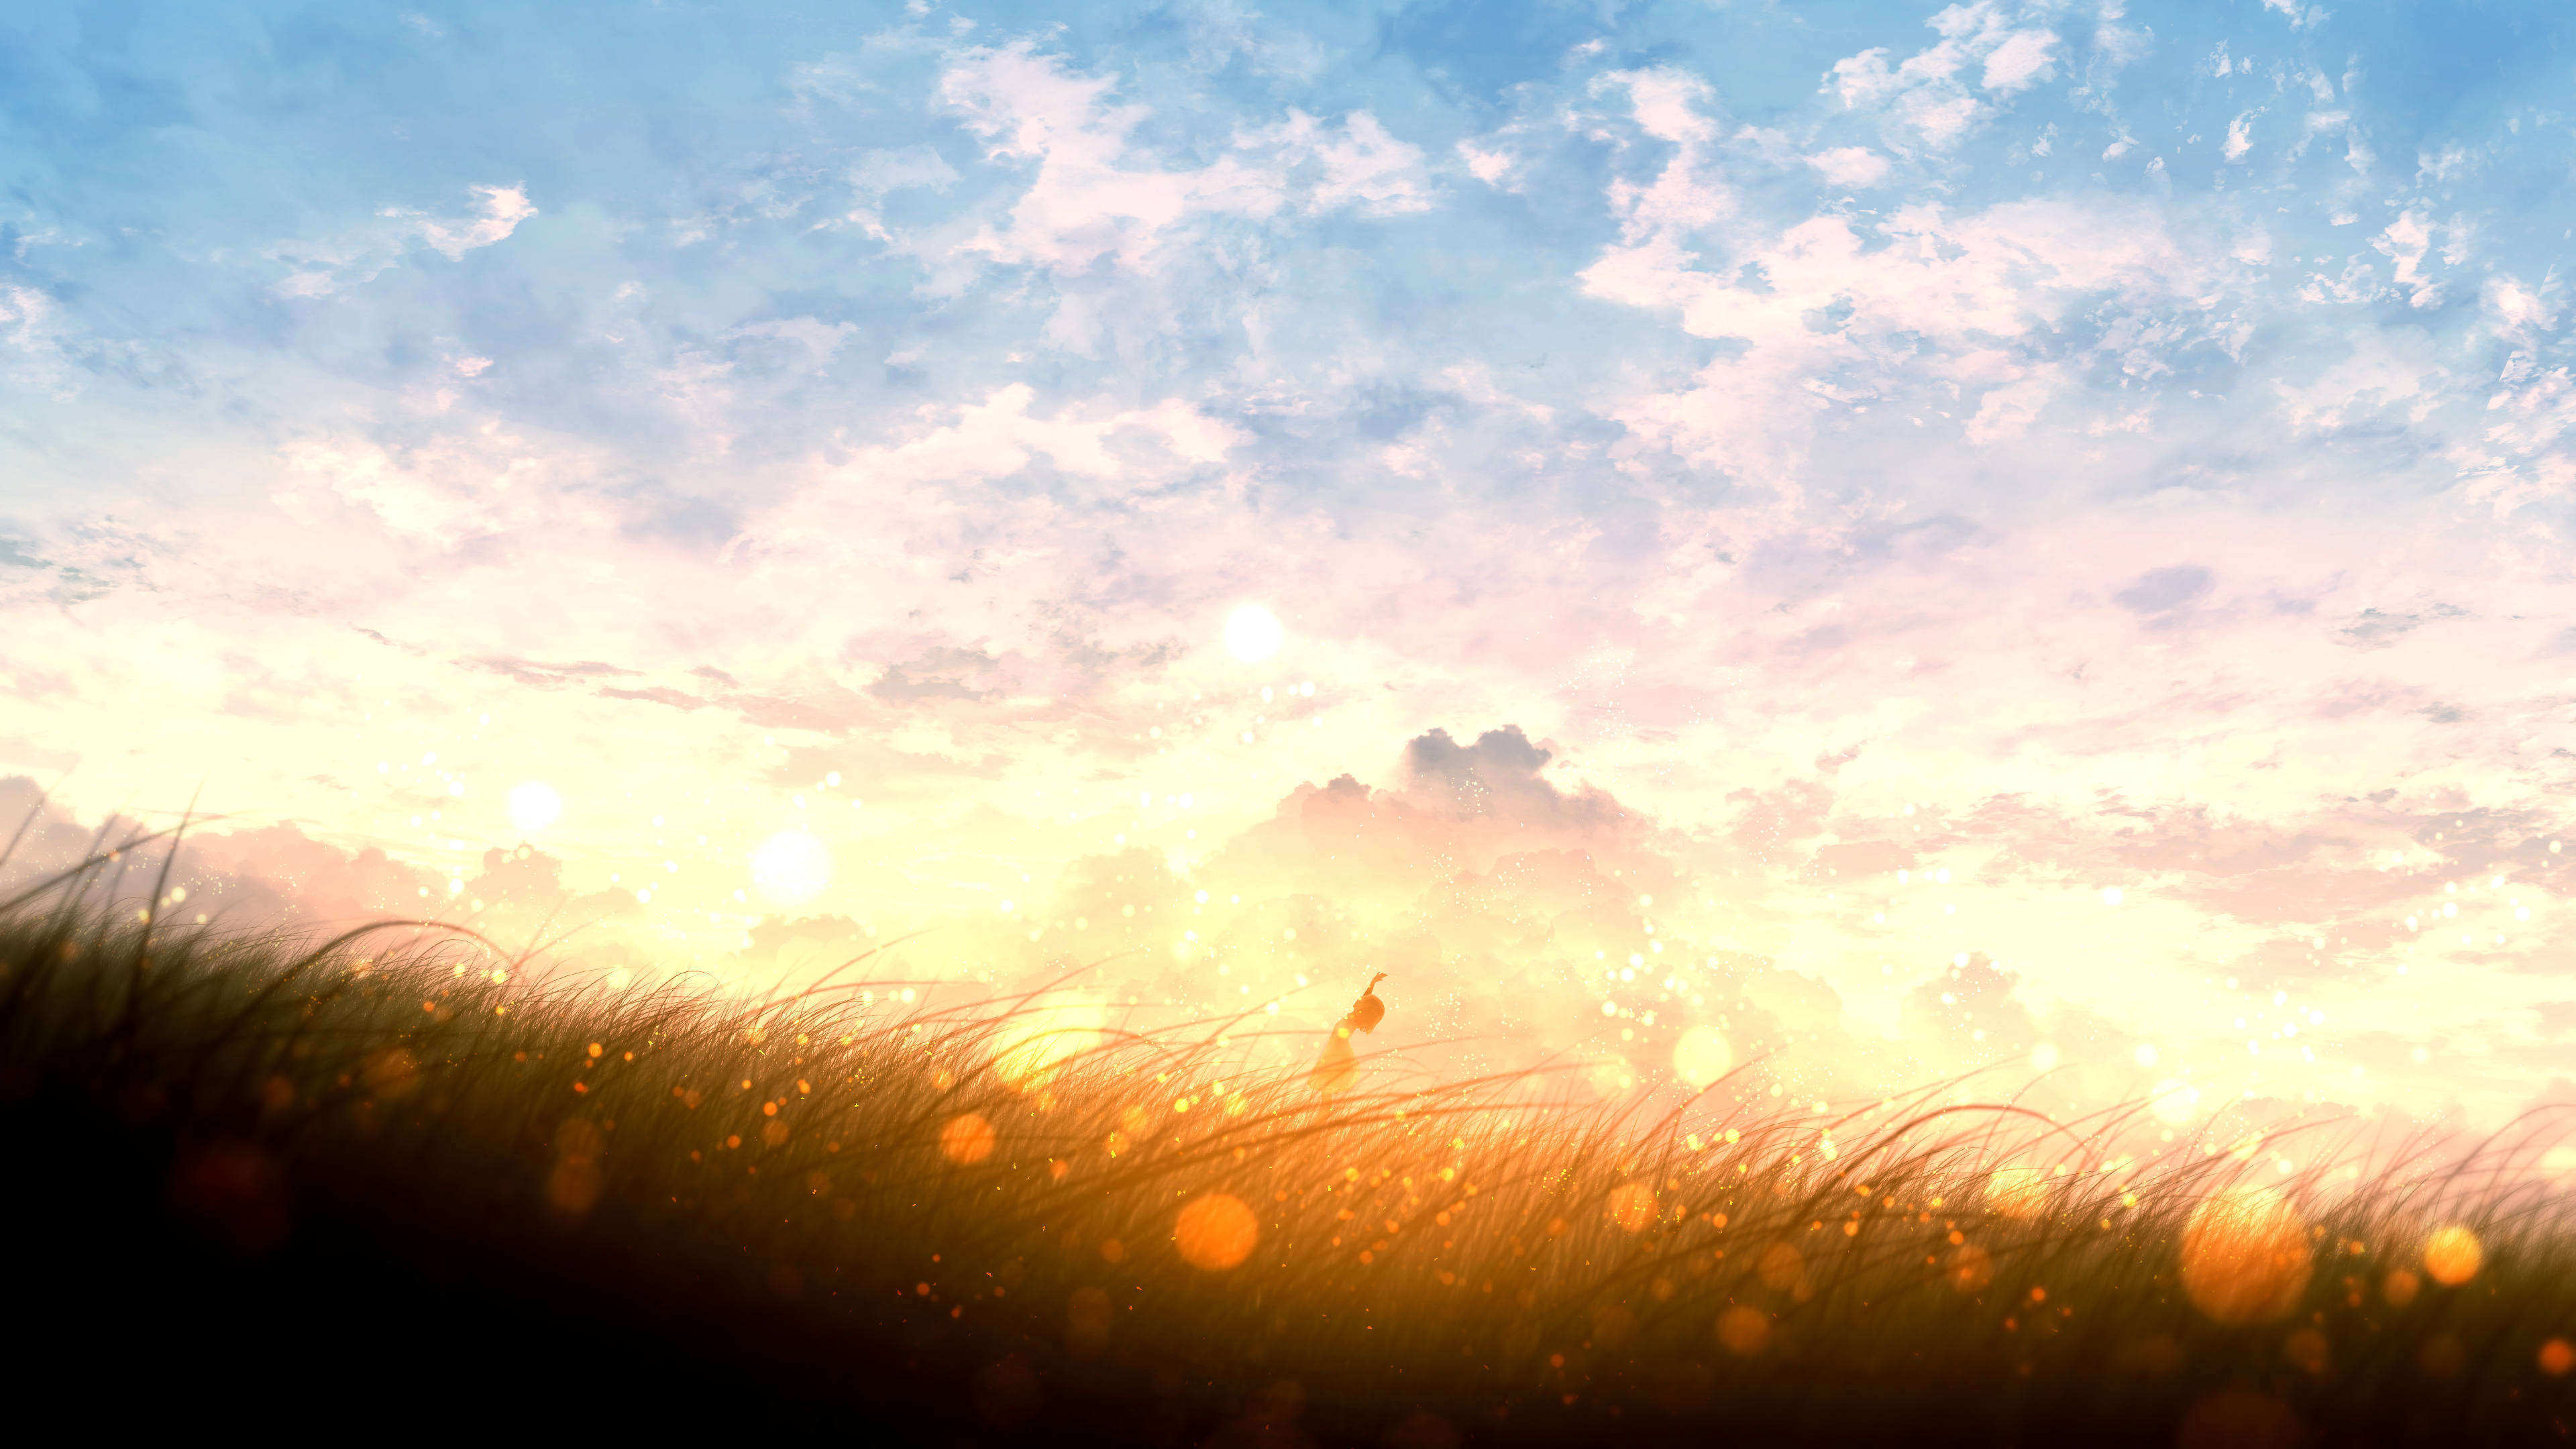 Anime Girl Looking Up At The Sky In A Glowing Golden Field 4k